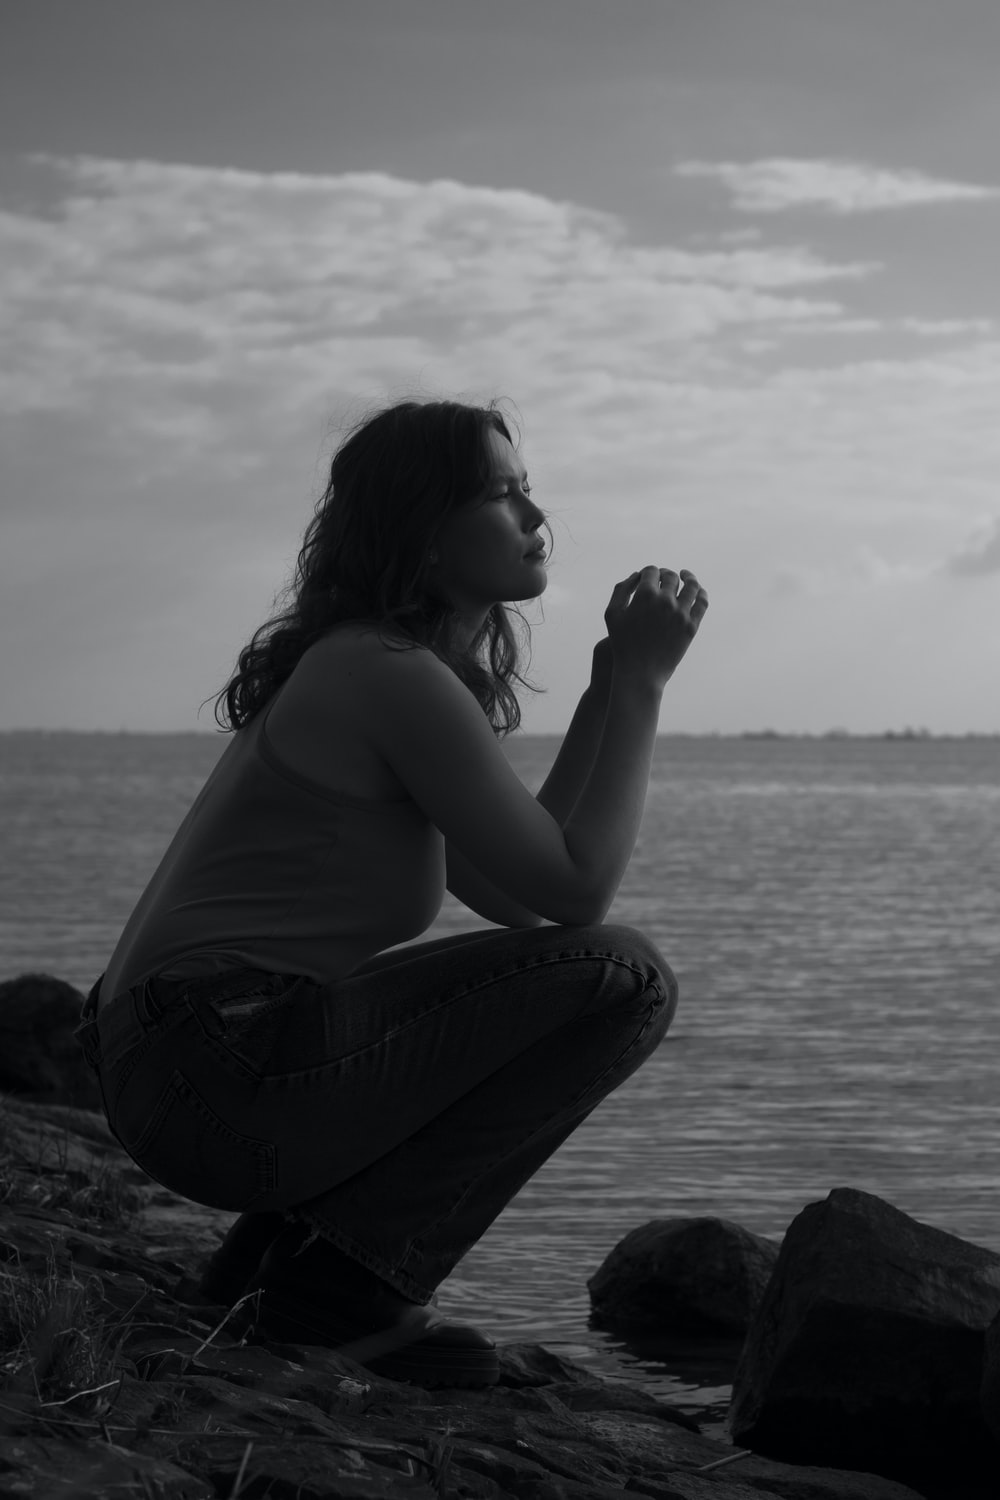 woman in black tank top and blue denim jeans sitting on rock near body of water